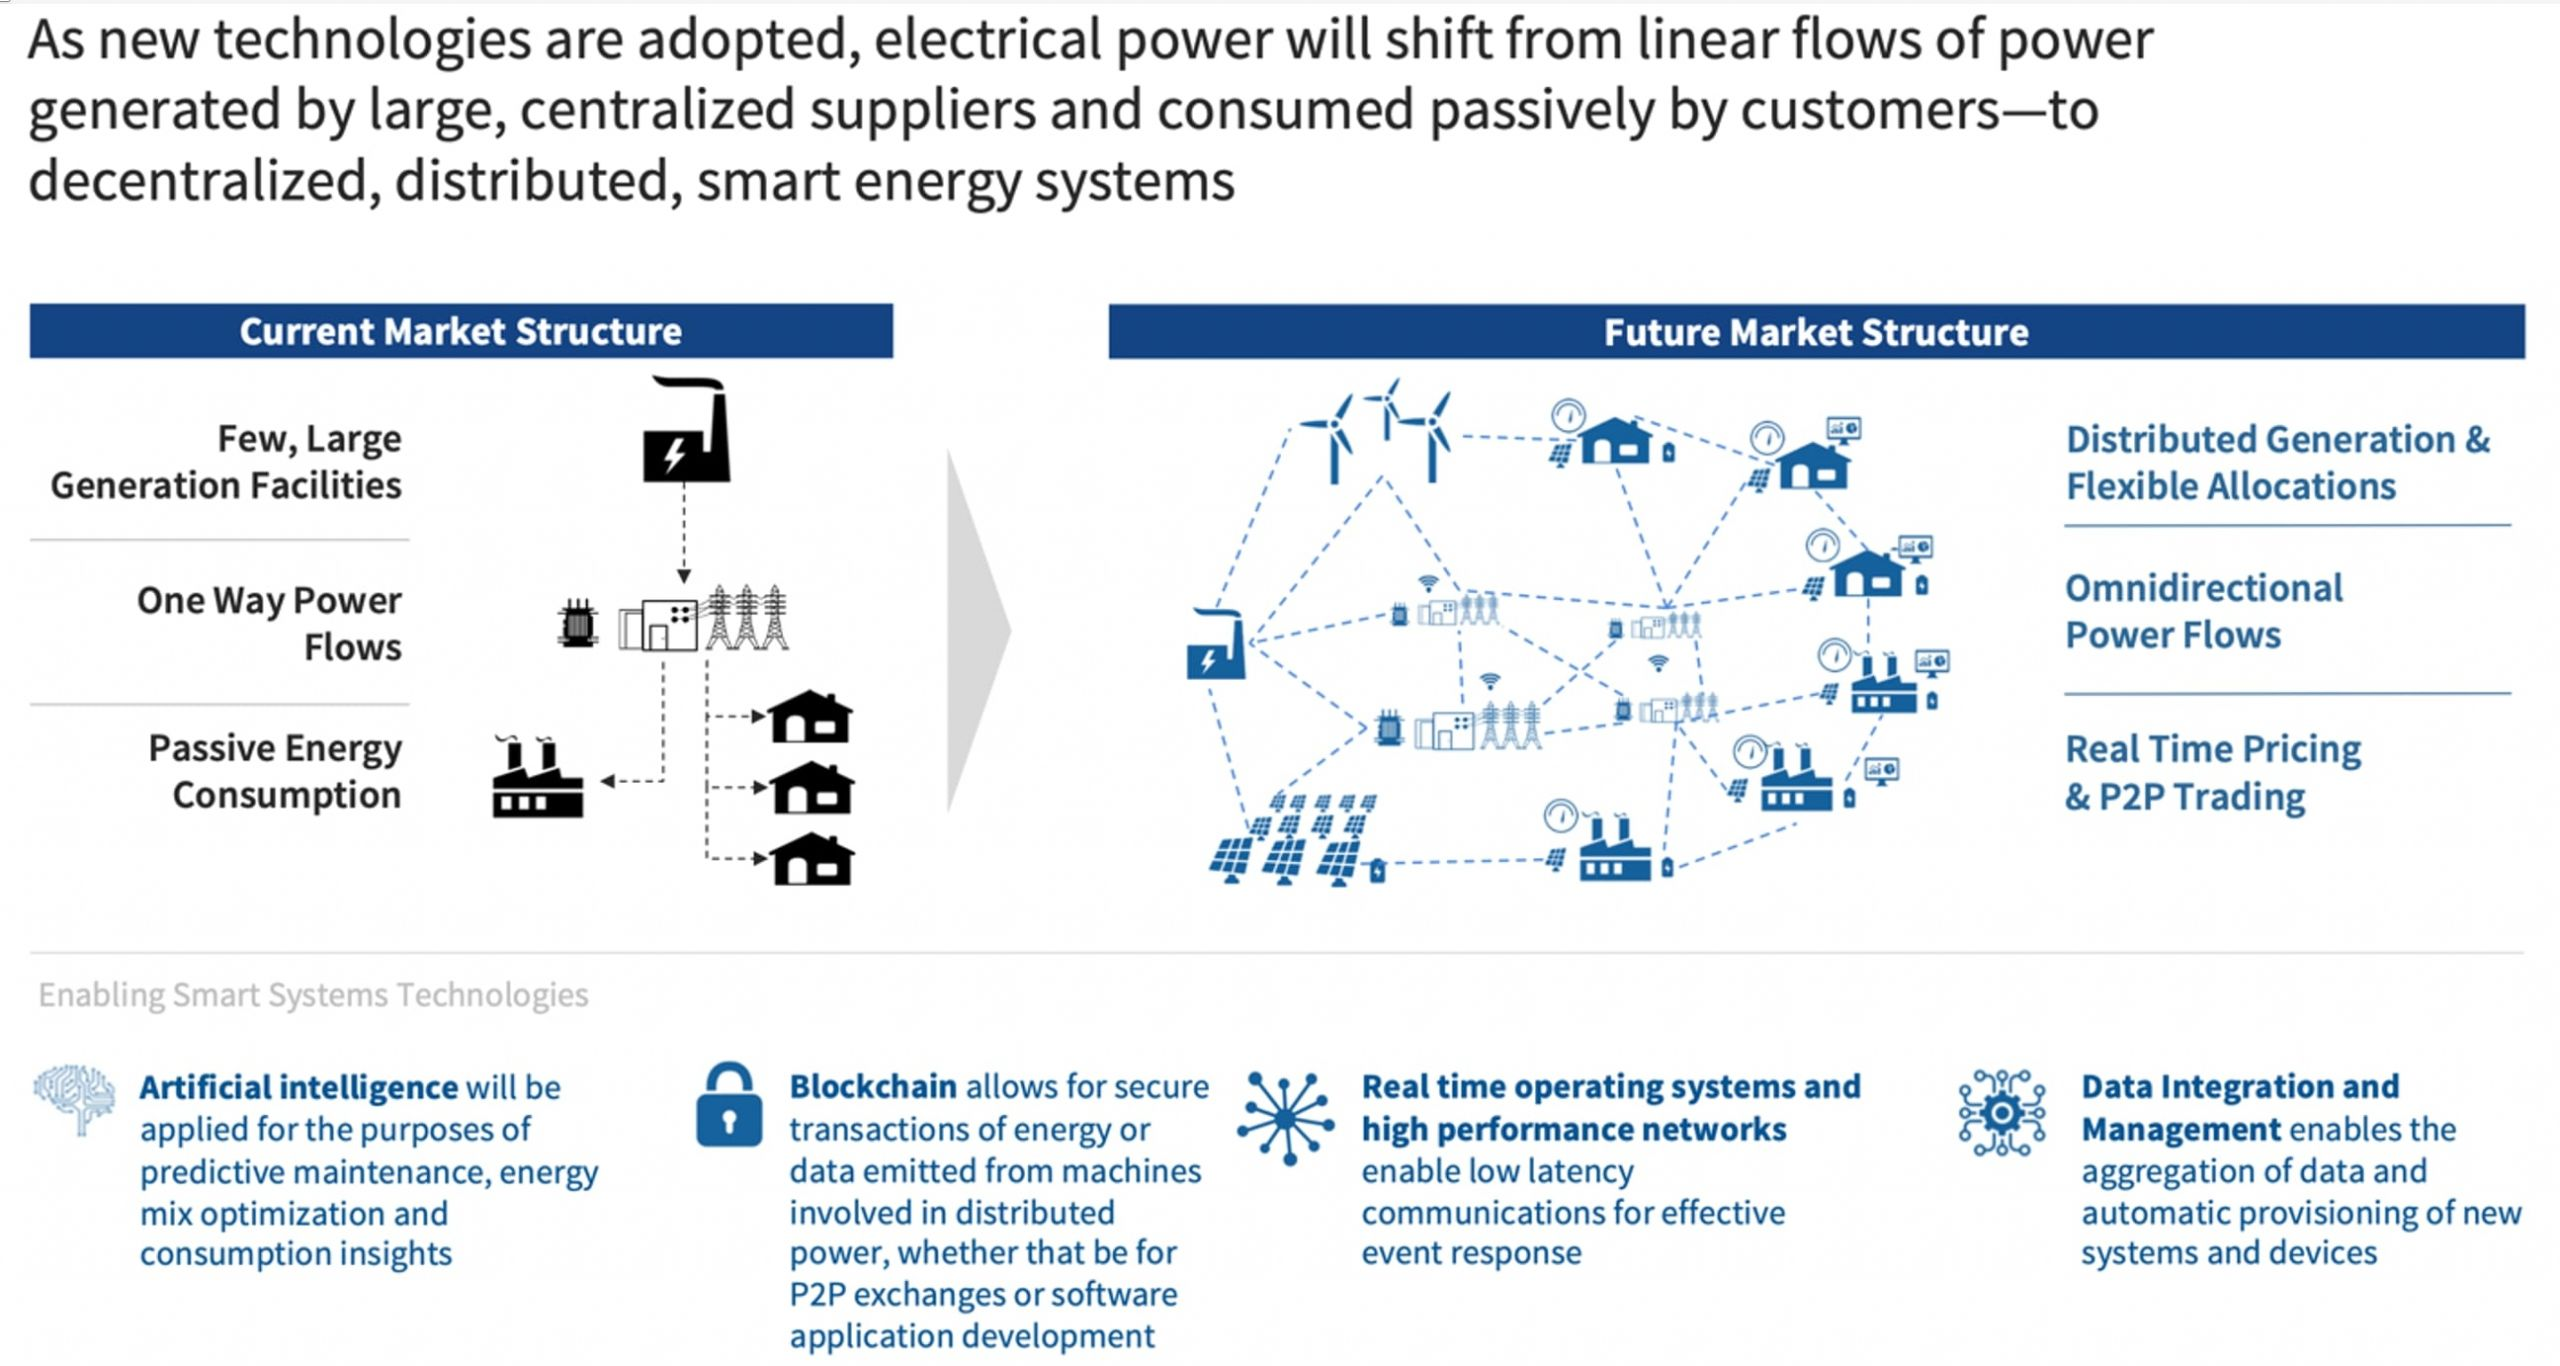 Smart power systems will drive a distributed energy future